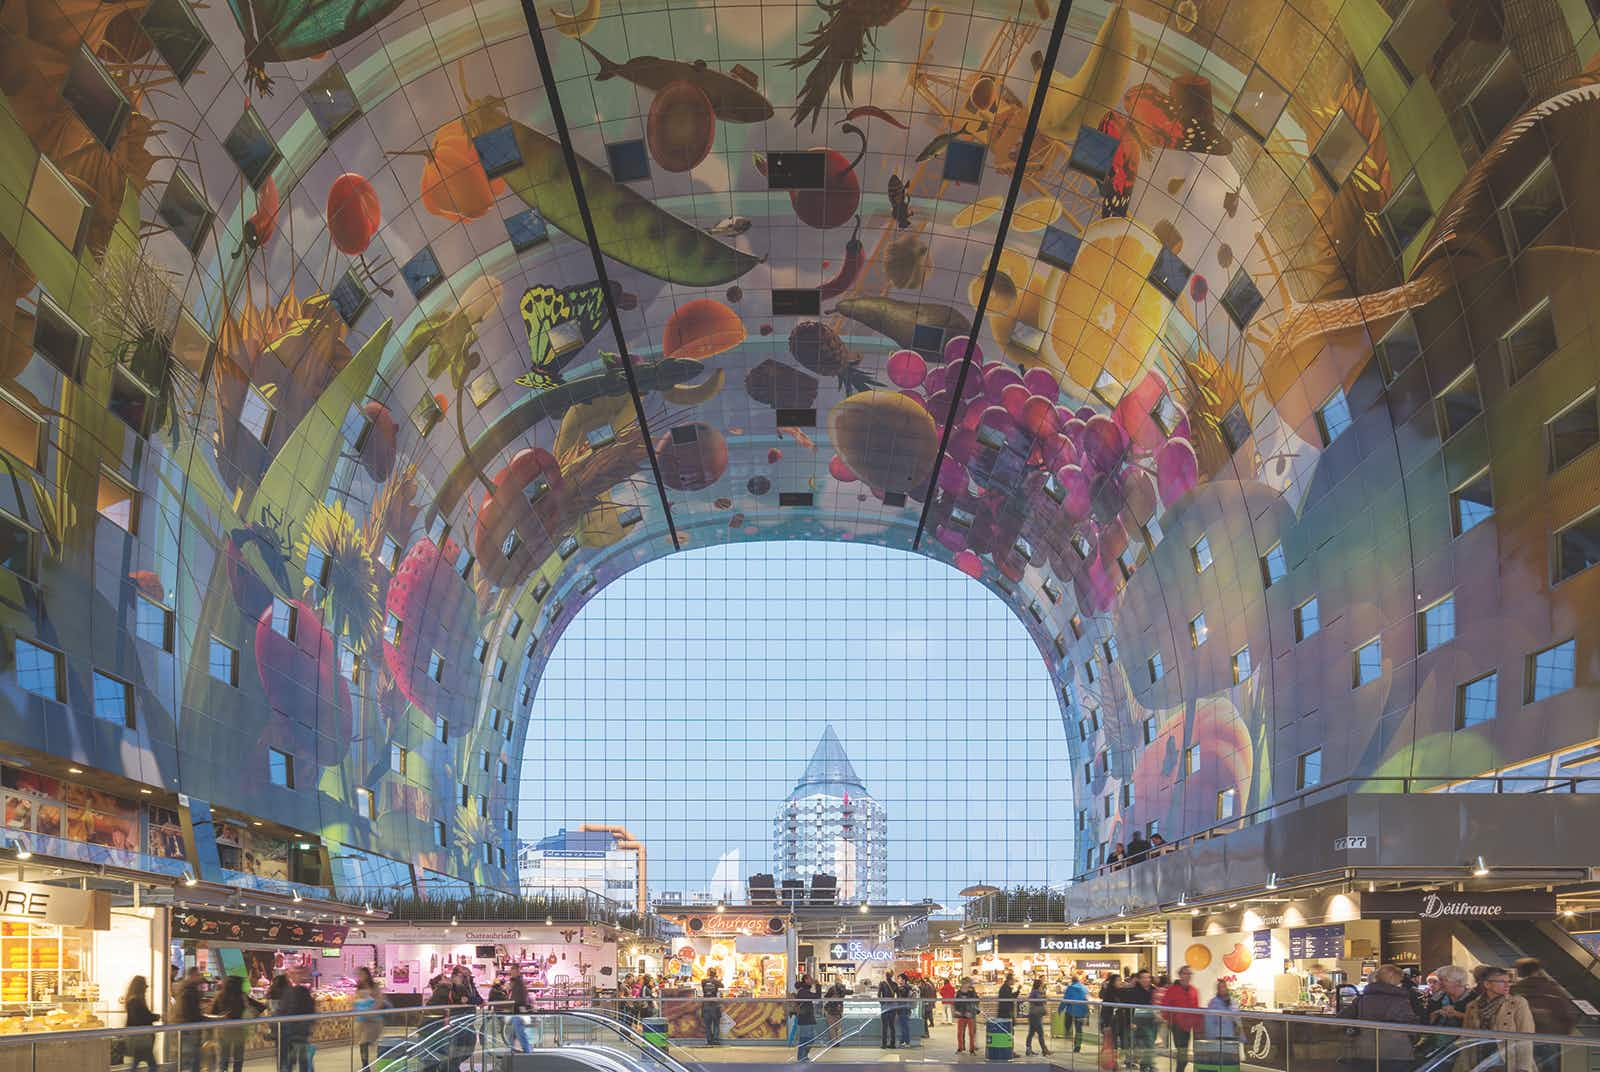 Experiencing the public art of Rotterdam